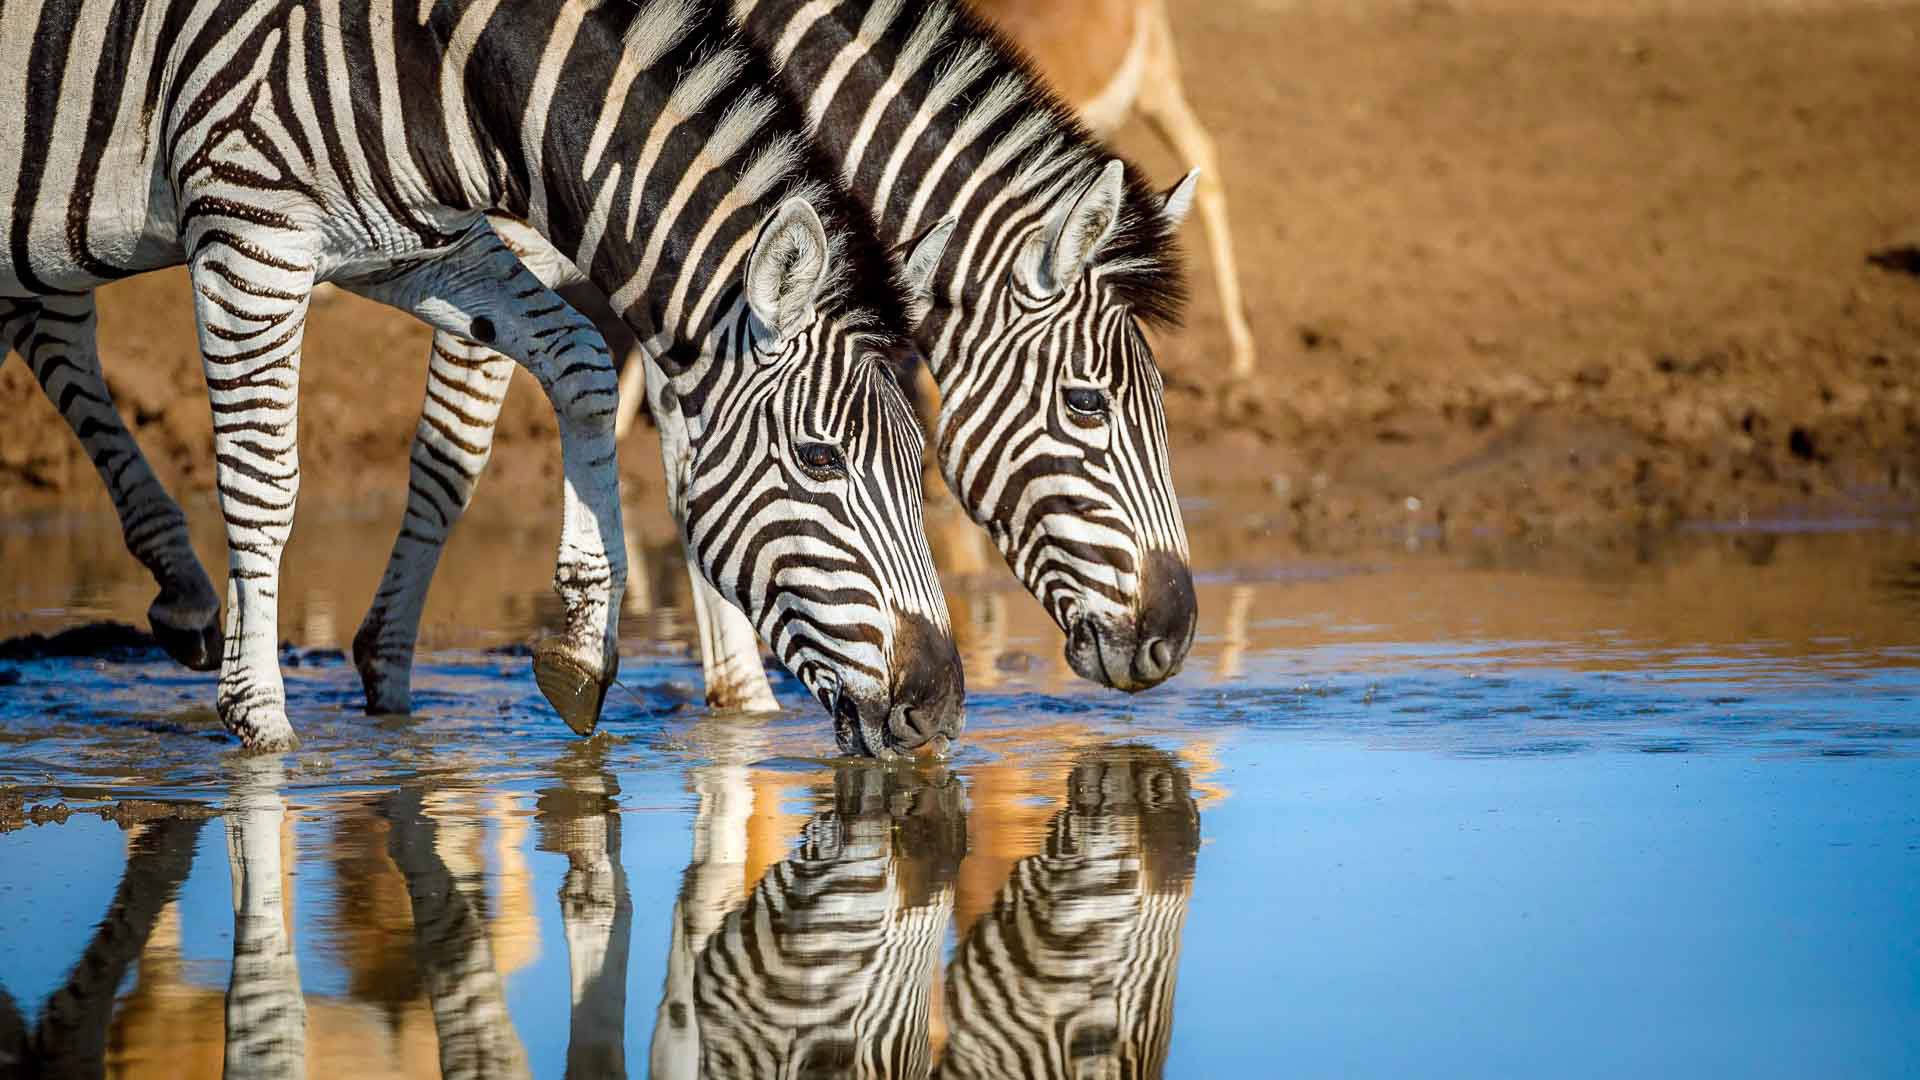 Tanda Tula - zebras and impalas drinking